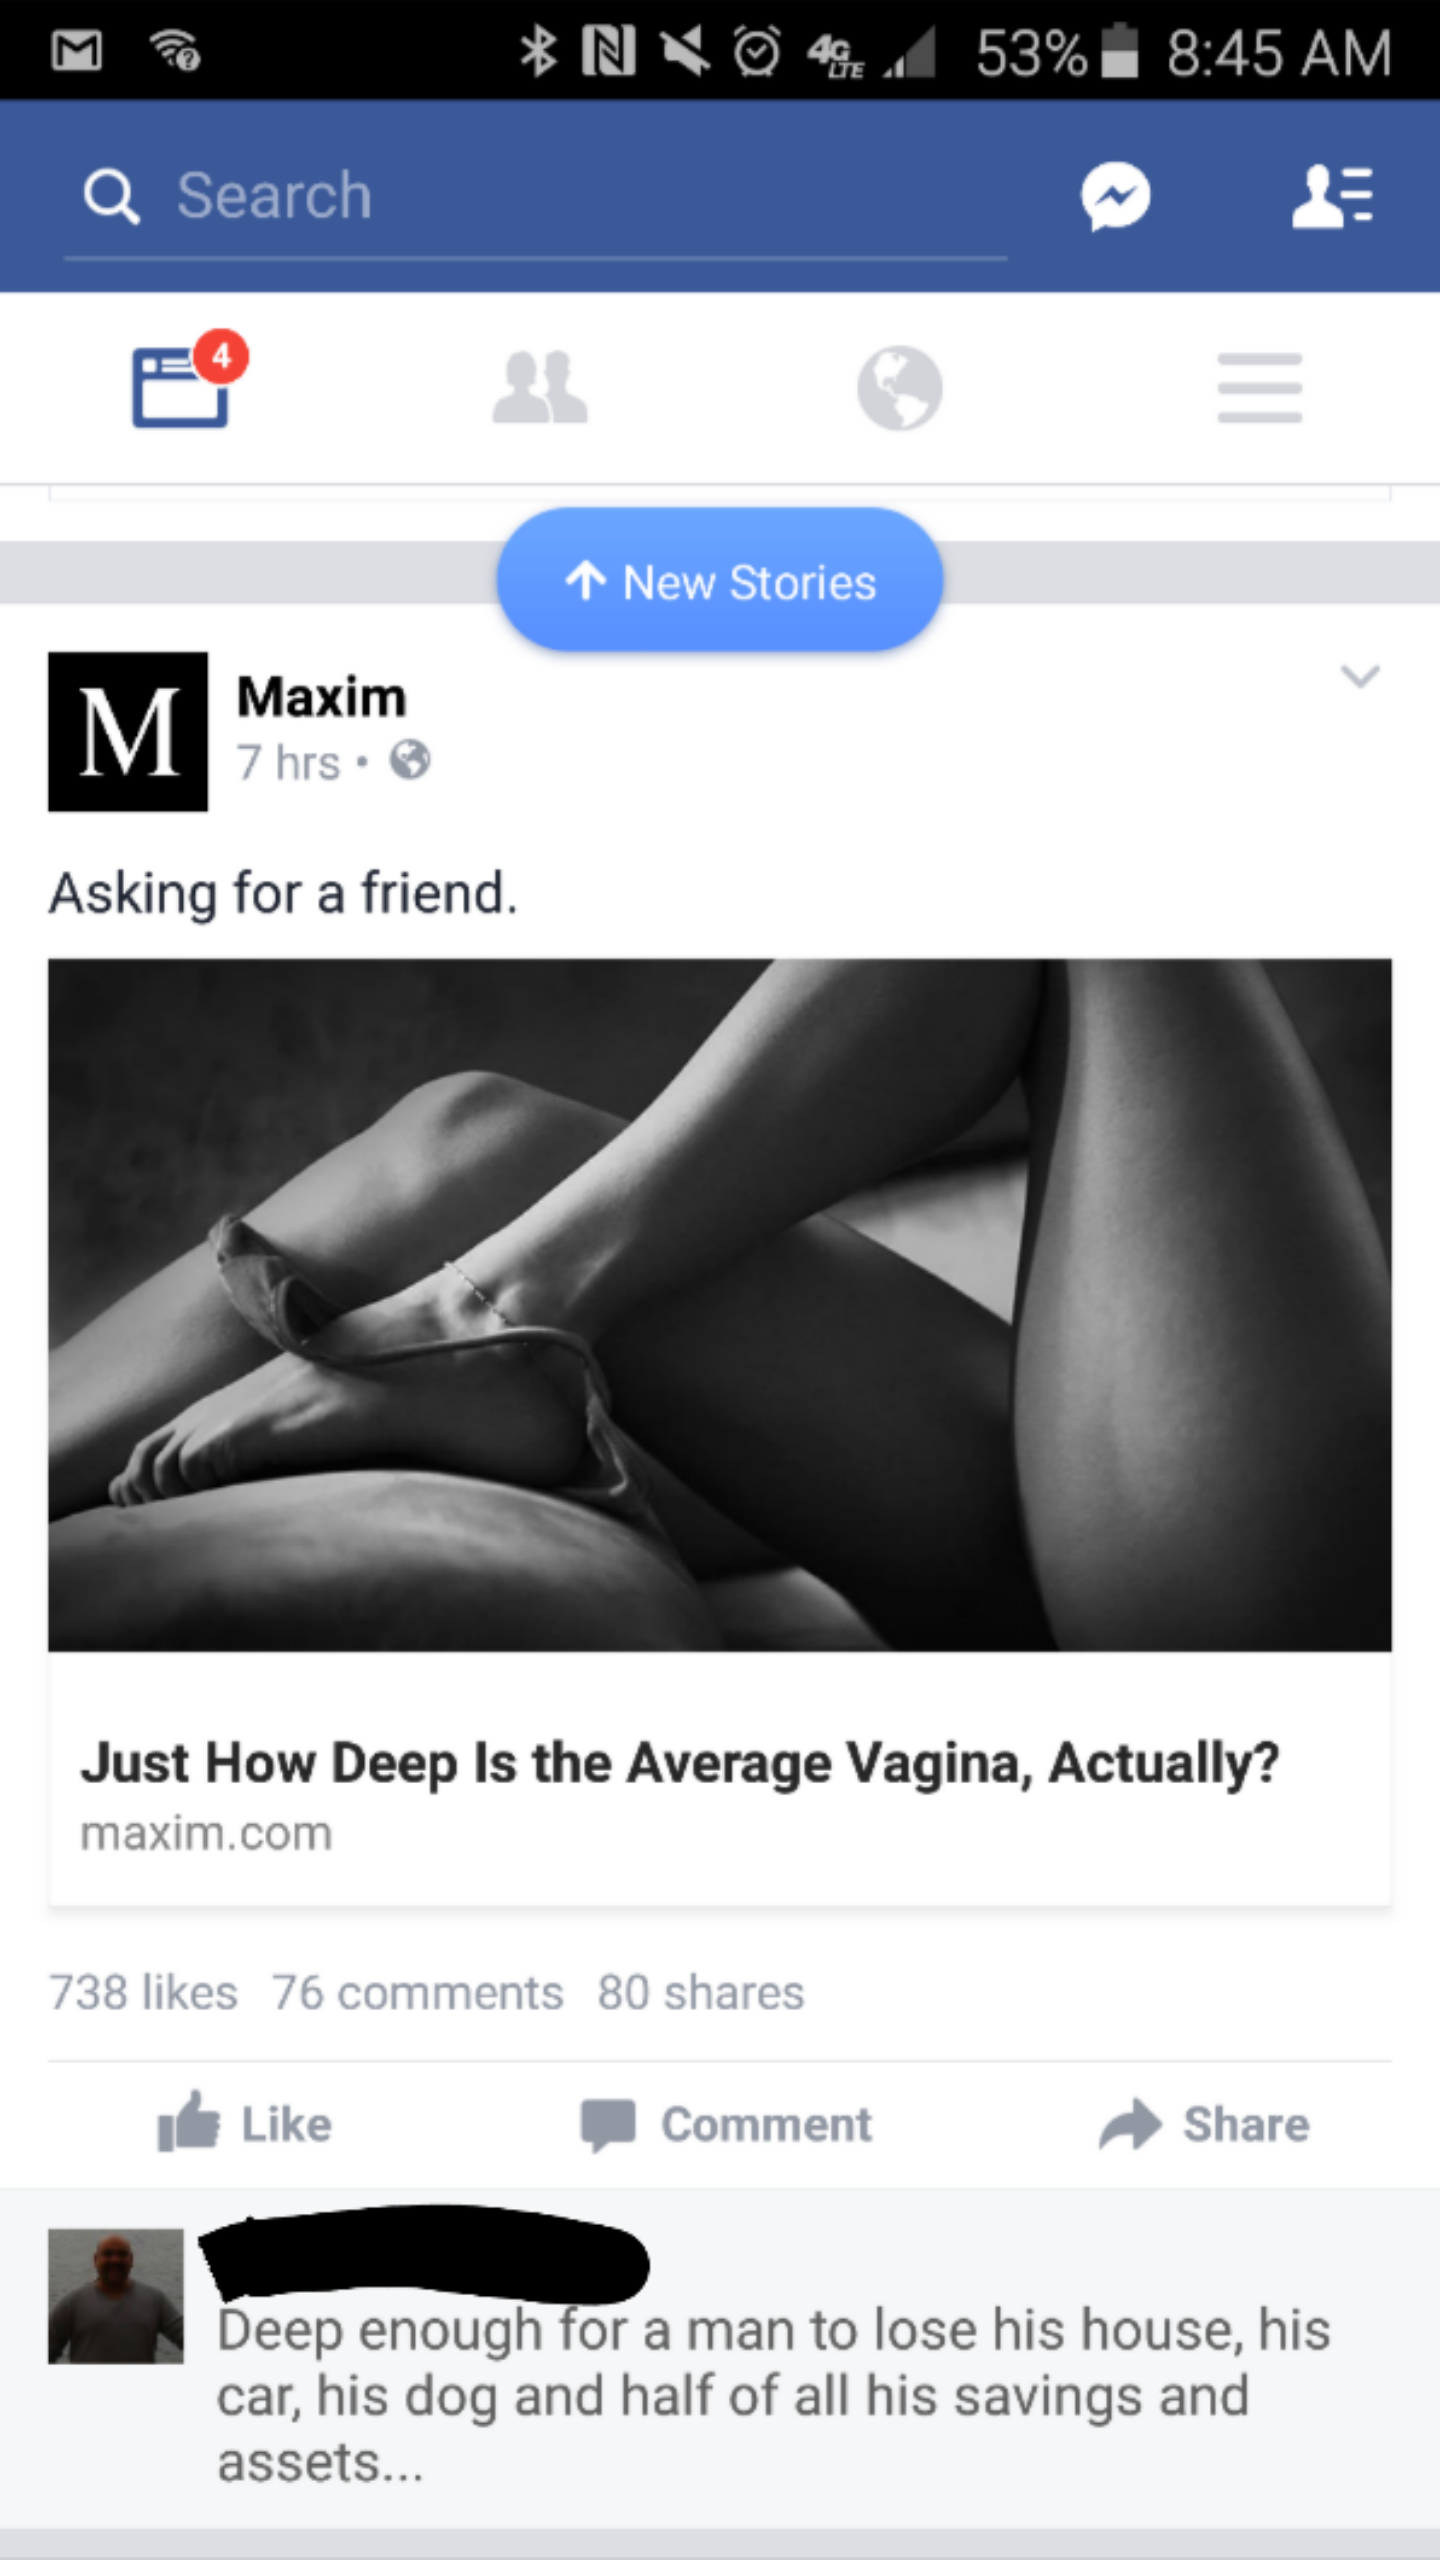 Just how deep is the average vagina?